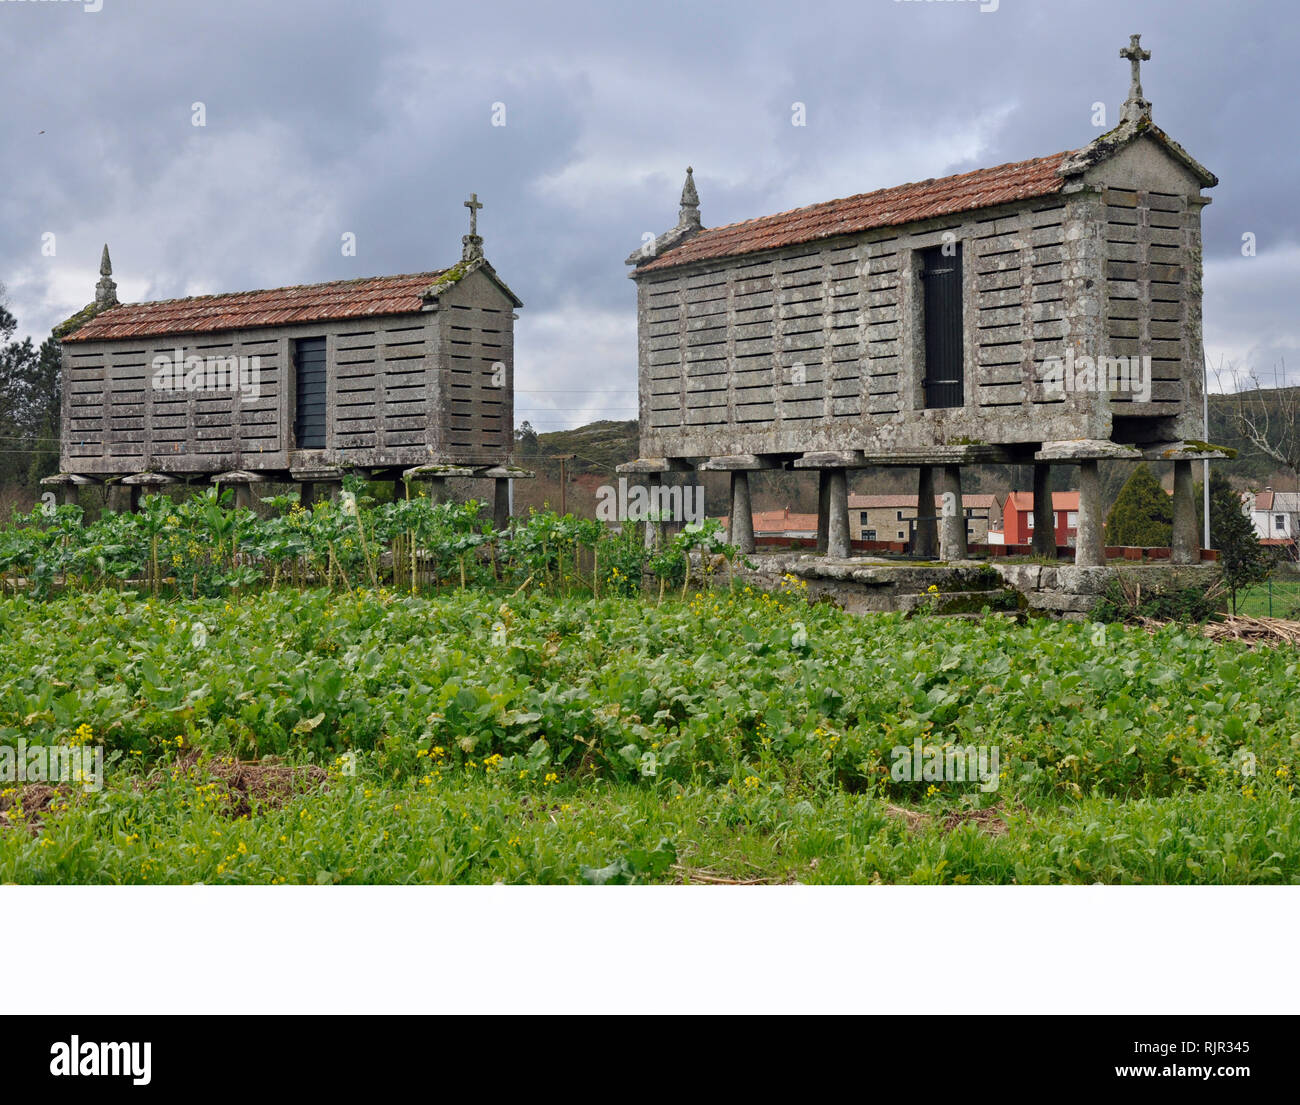 Traditional rectangular stone granaries or 'hórreos', used for centuries in Galicia, Spain to store grain, keeping it dry and safe from rodents. - Stock Image